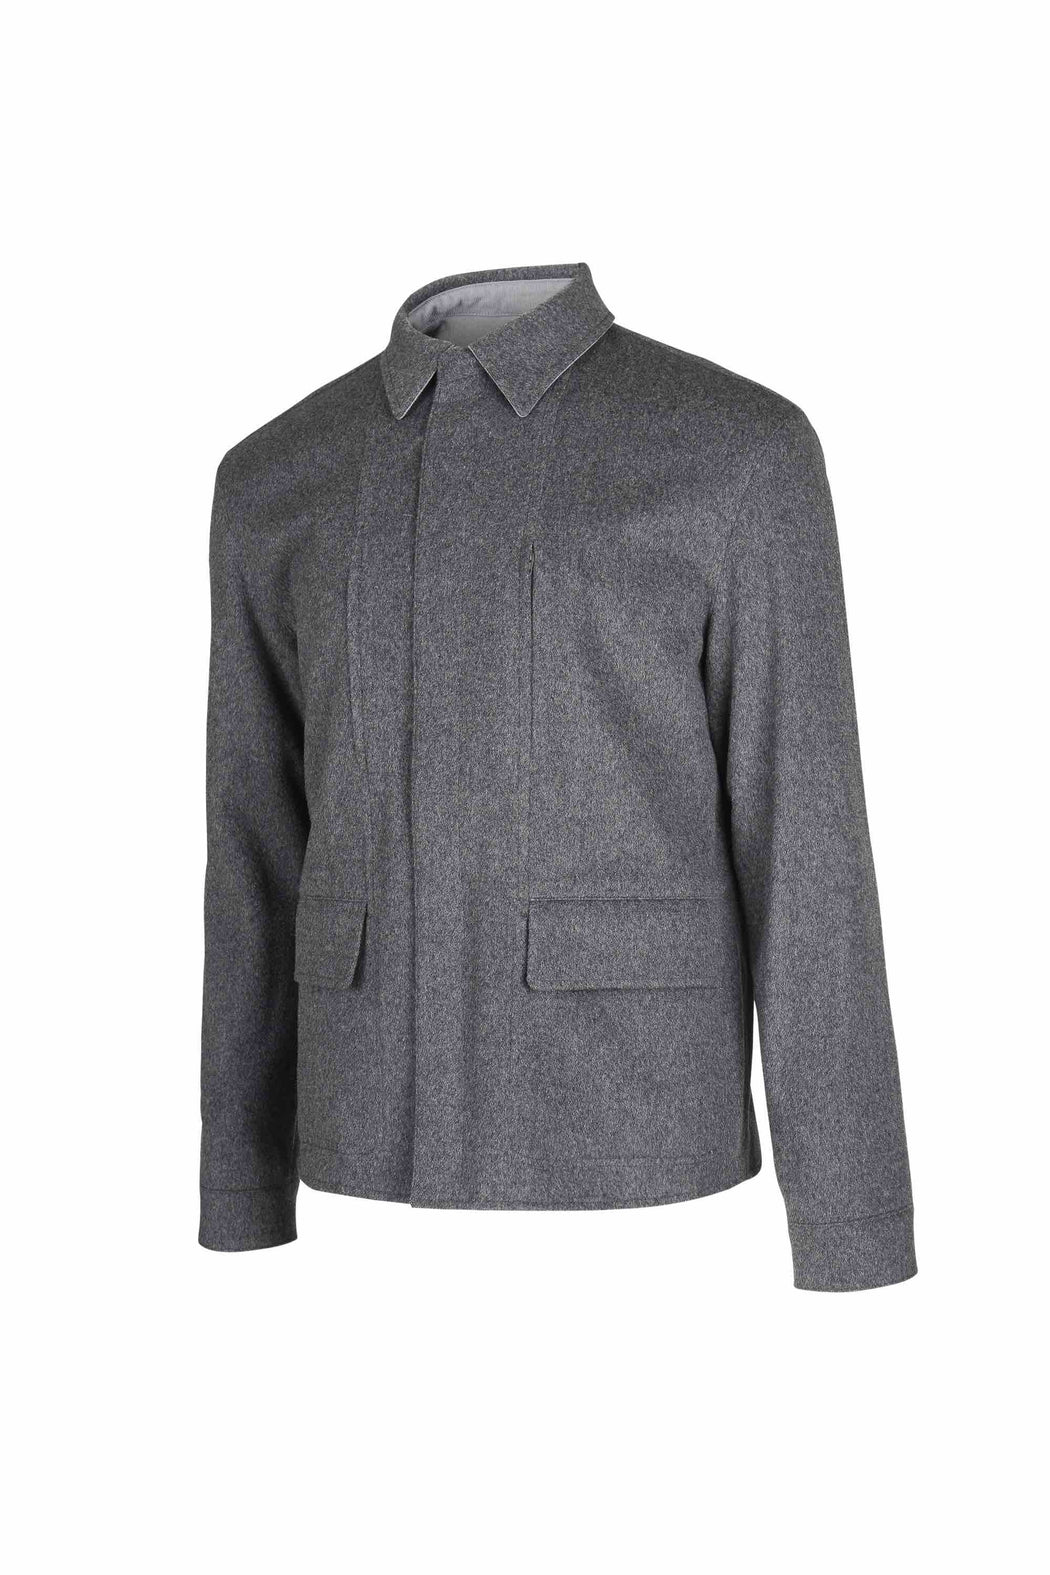 Side view of Men Reversible Wool Jacket in Melange Grey (Wool/cashmere blend side)